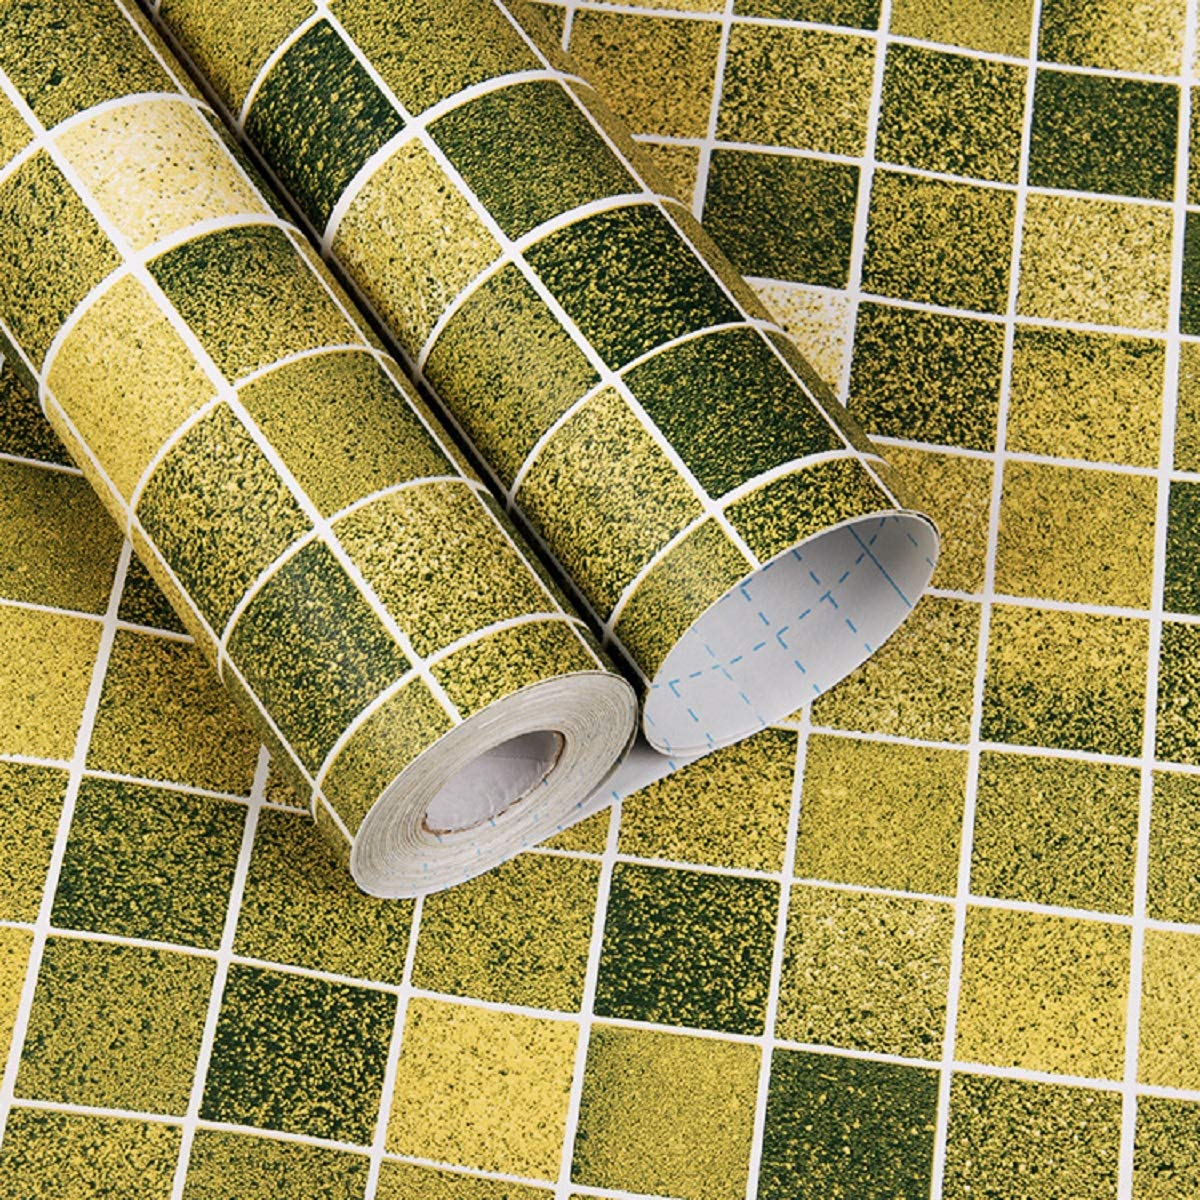 practicalWs PVC Mosaic Contact Paper Bathroom Kitchen Cabinet Home Decoration Anti-Water Oil-Proof Easy to Clean and Install Wall Sicker Removable 17.7 inch x196 inch